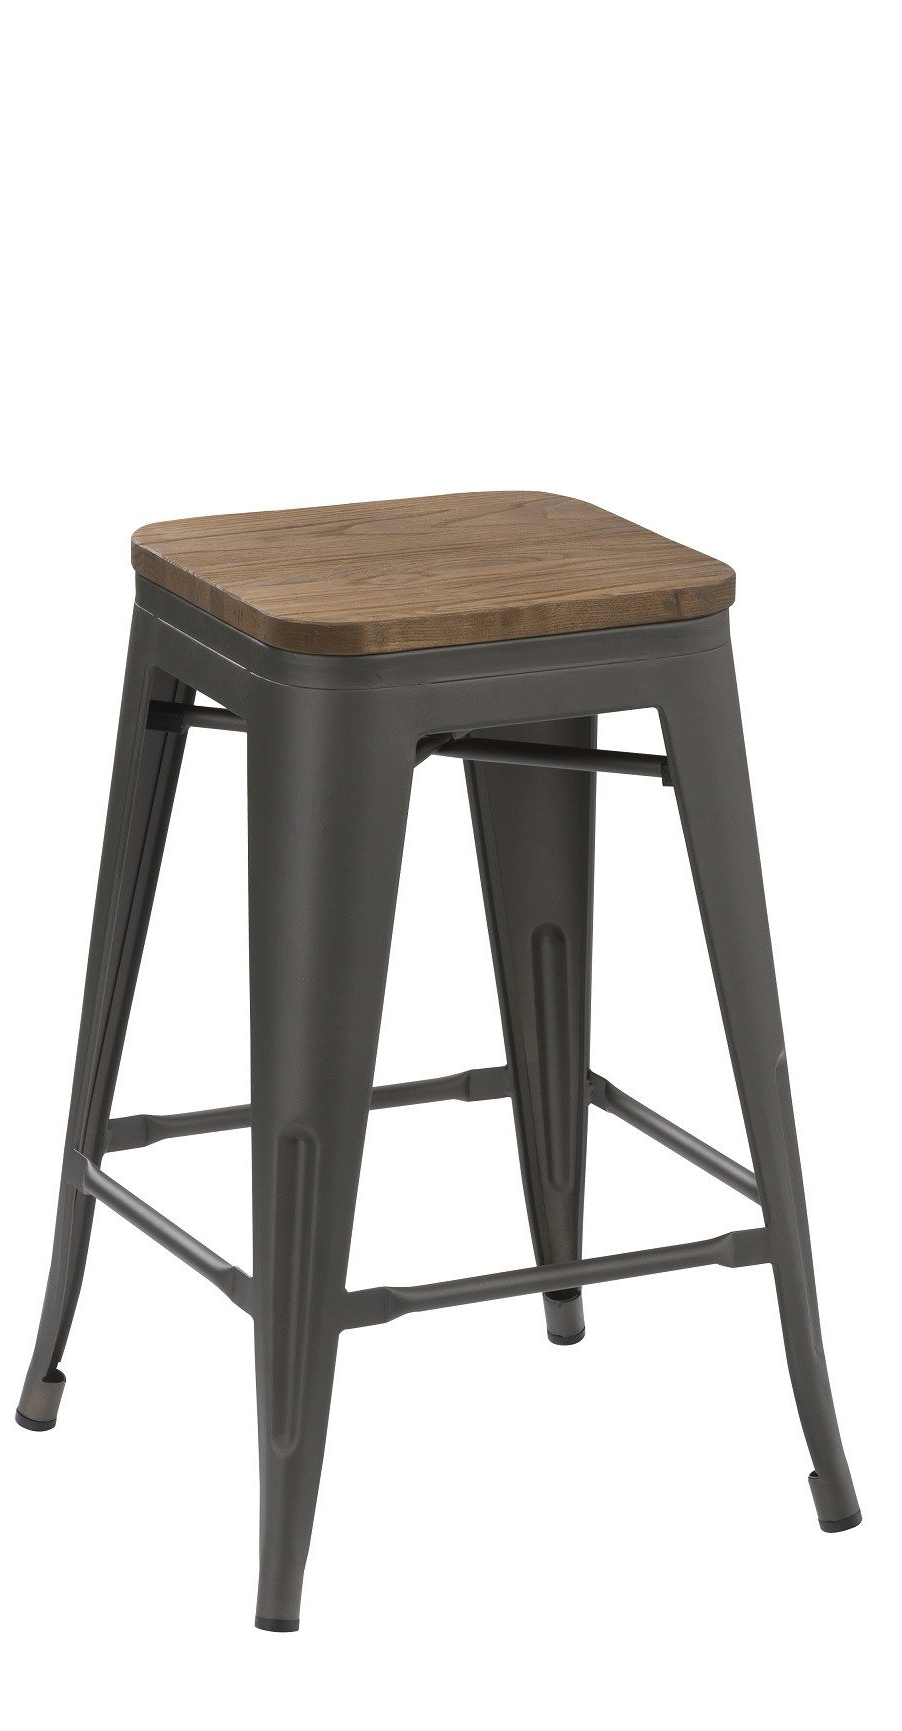 Prime 30 Metal Vintage Gunmetal Rustic Counter Bar Stool Modern Ocoug Best Dining Table And Chair Ideas Images Ocougorg